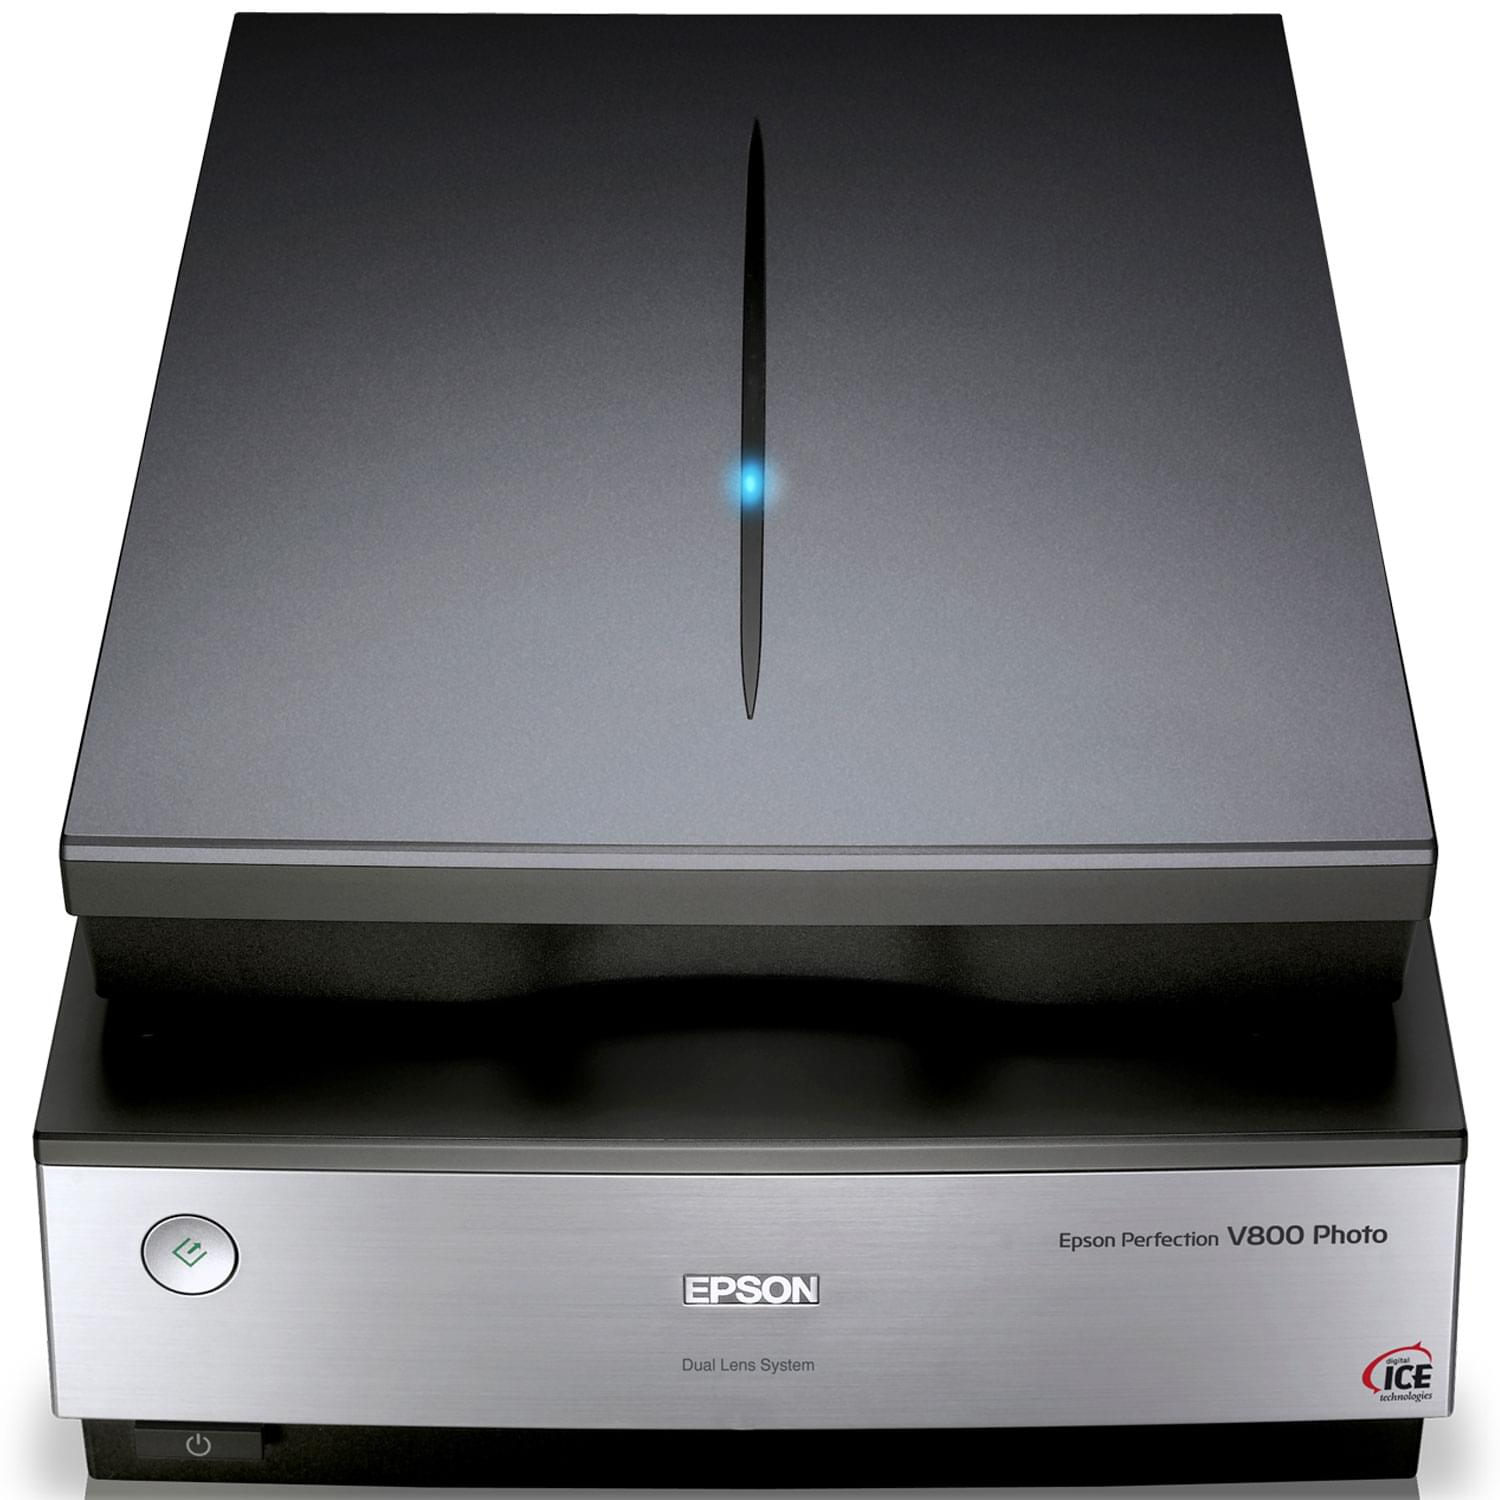 Epson Perfection V800 Photo - Scanner Epson - Cybertek.fr - 0